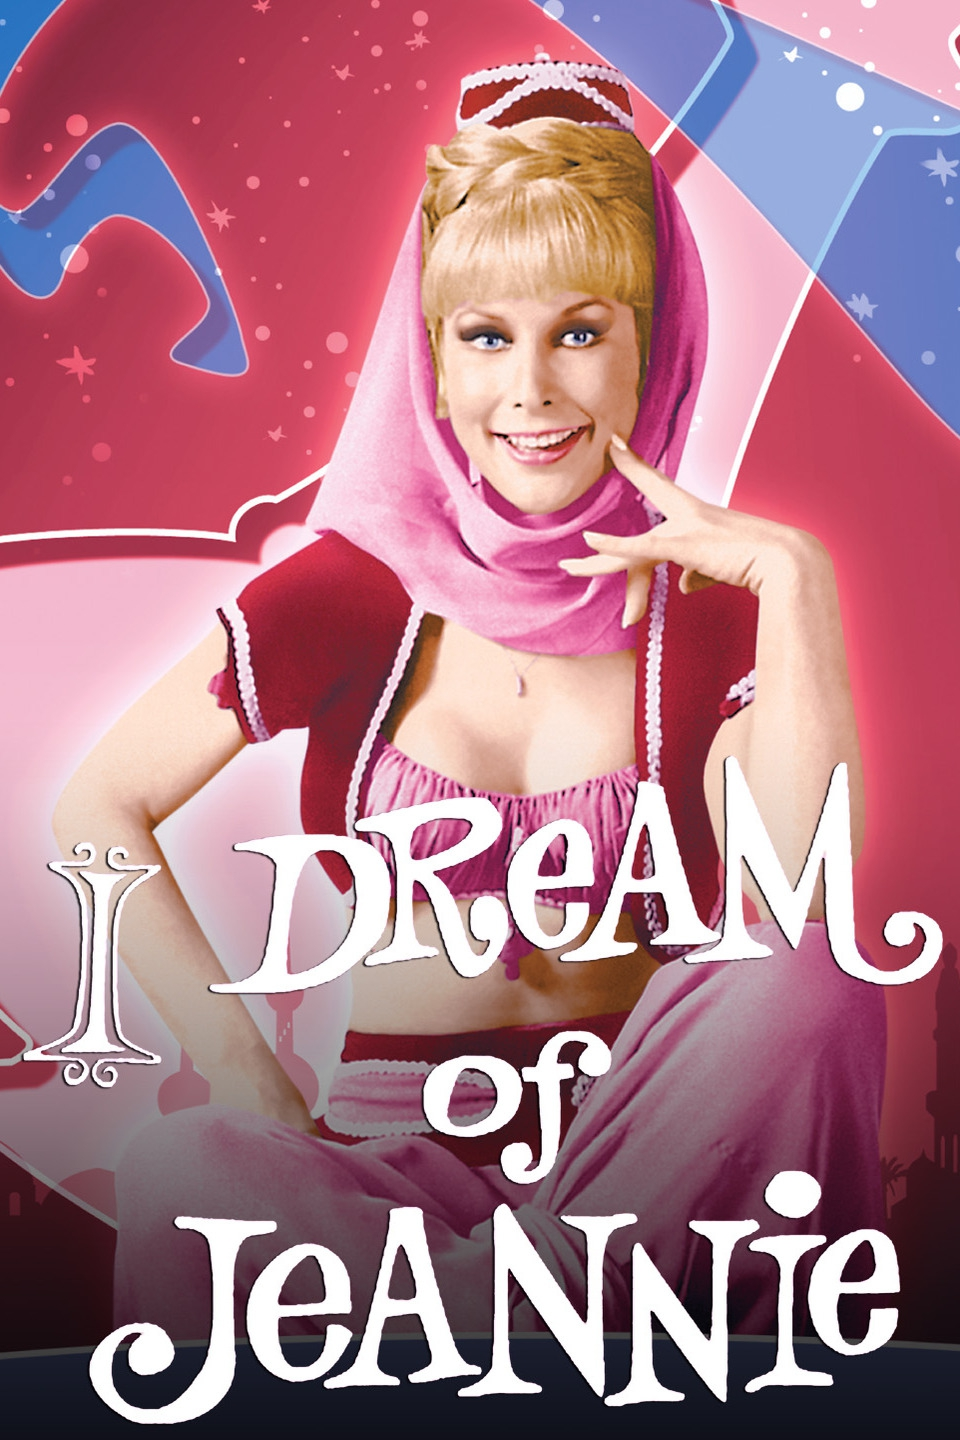 Streming the erotic dreams of jeanie